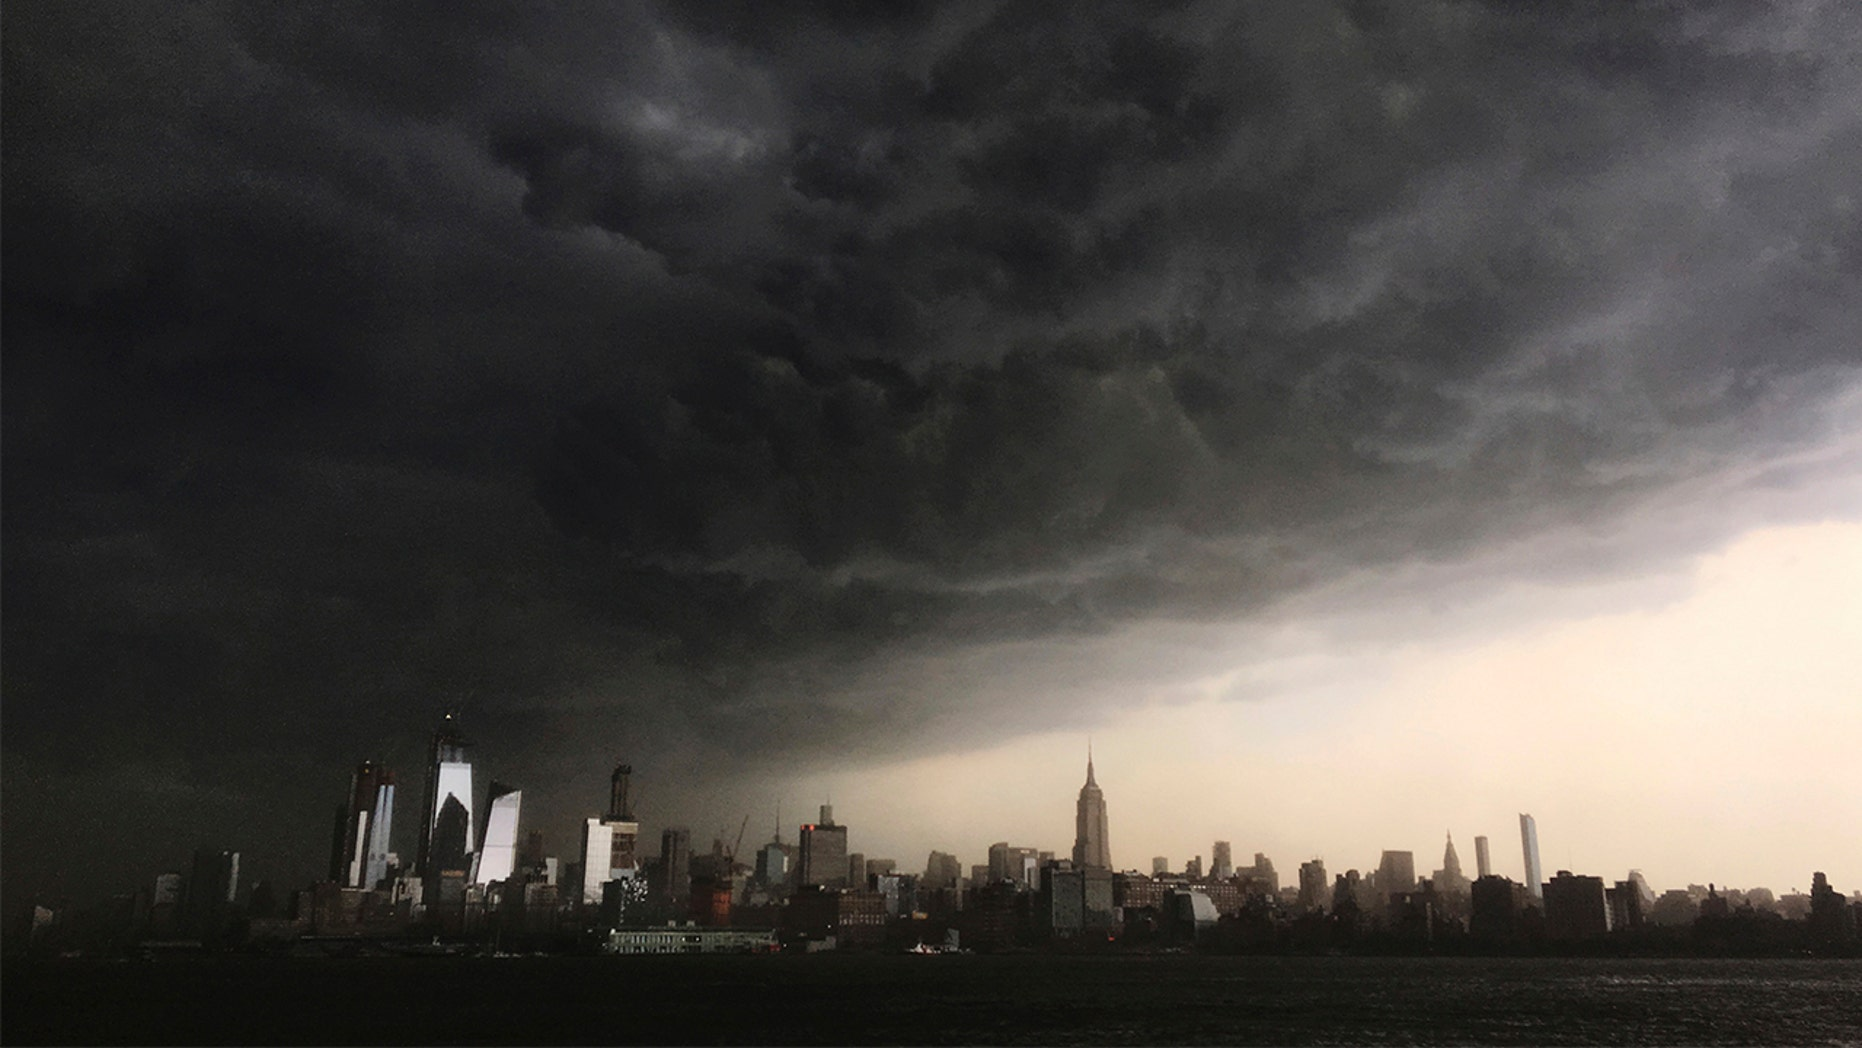 Storm clouds seen gathering over New York City on Tuesday. The National Weather Service on Wednesday said three tornadoes hit parts of New York amid storms across the Northeast on Tuesday.